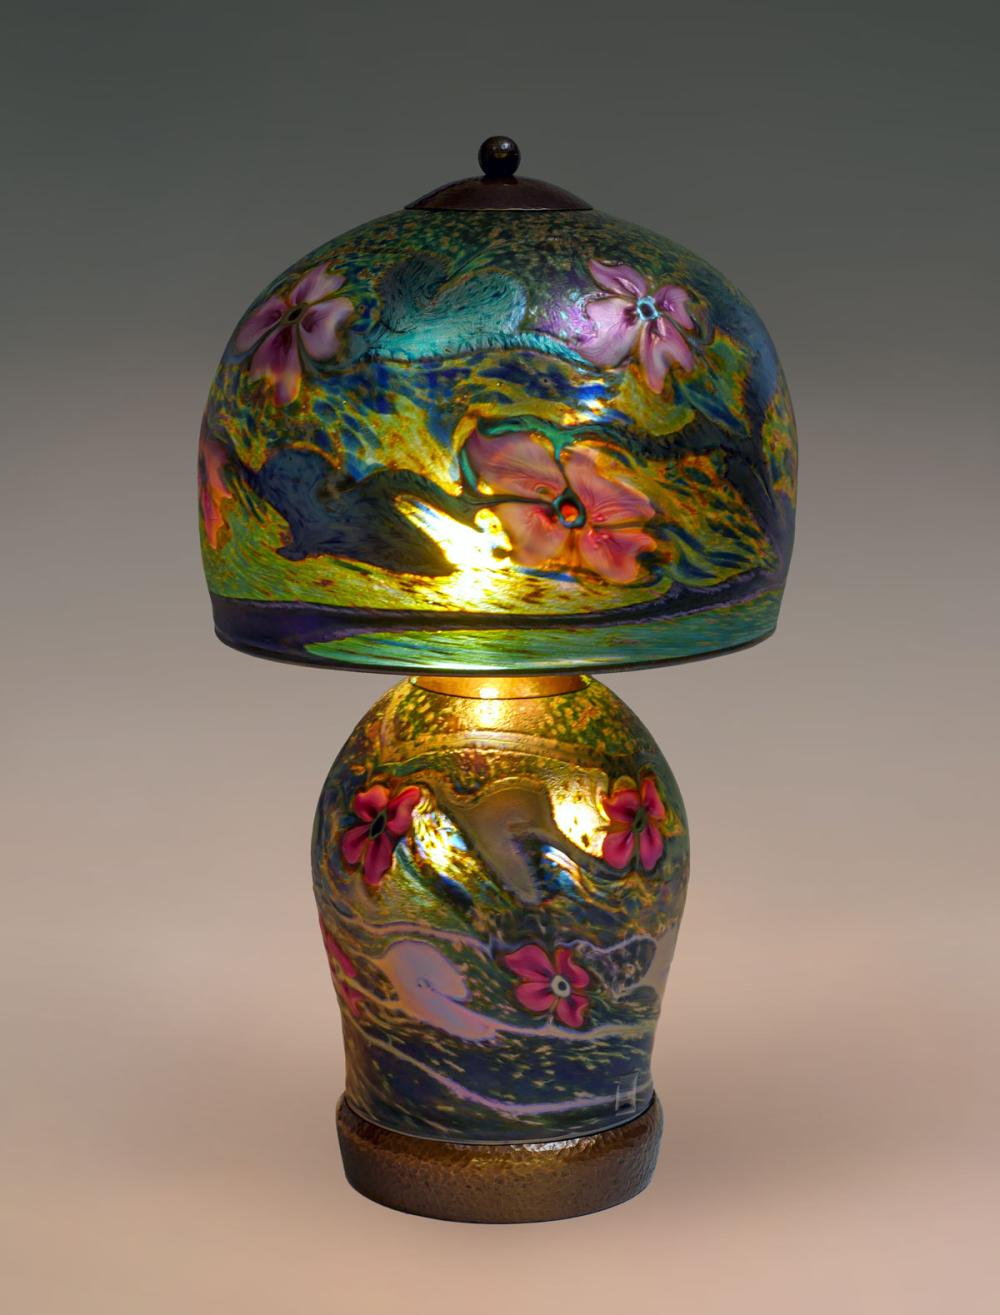 CHARLES LOTTON MULTI-FLORA IRIDESCENT LAMP